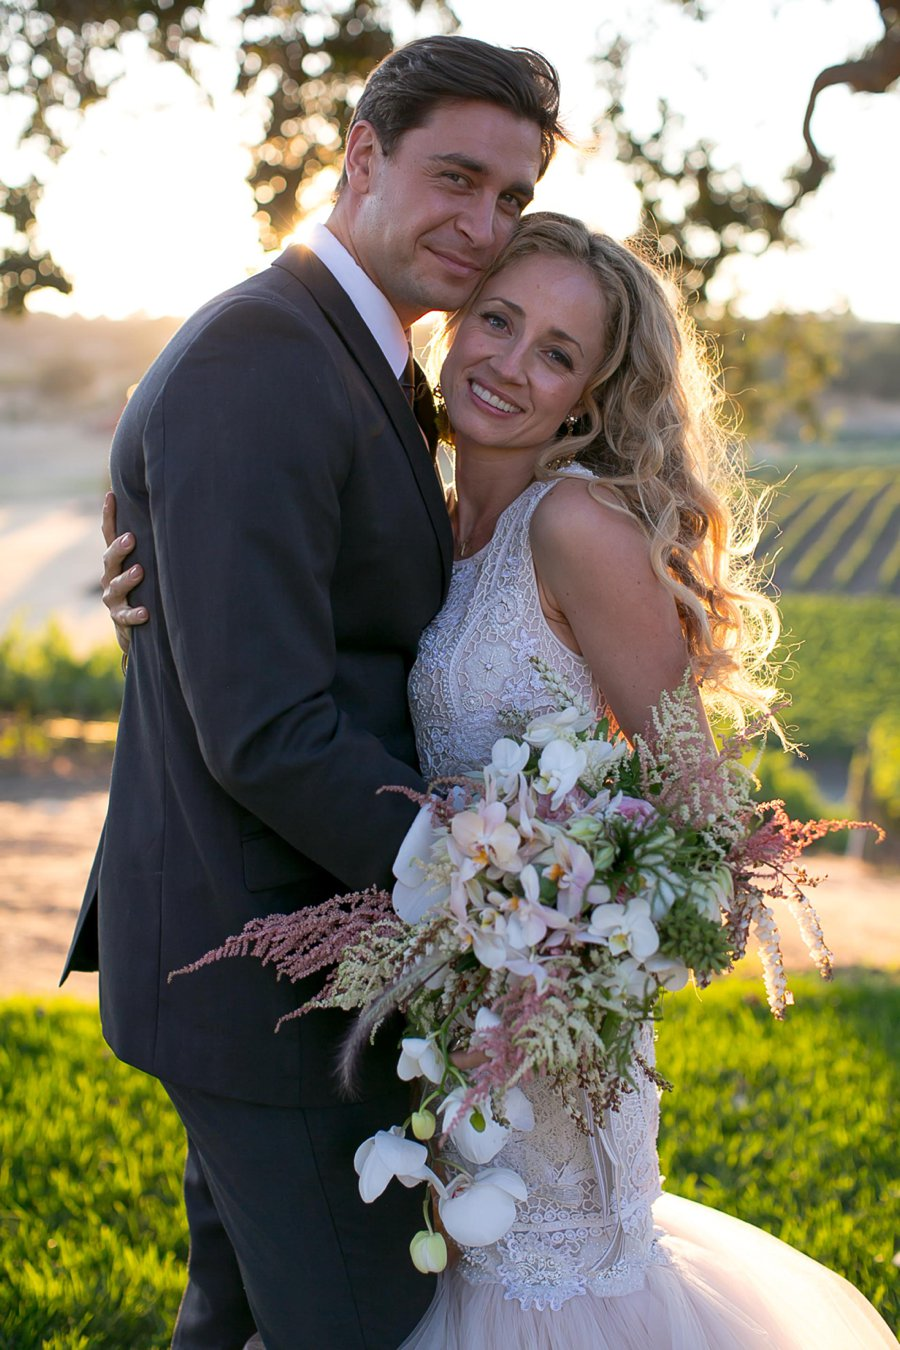 STOLPMANN VILLA AND VINEYARDS | LOS OLIVOS WEDDING PHOTOGRAPHER CHRIS HOLT PHOTOGRAPHY_058.jpg